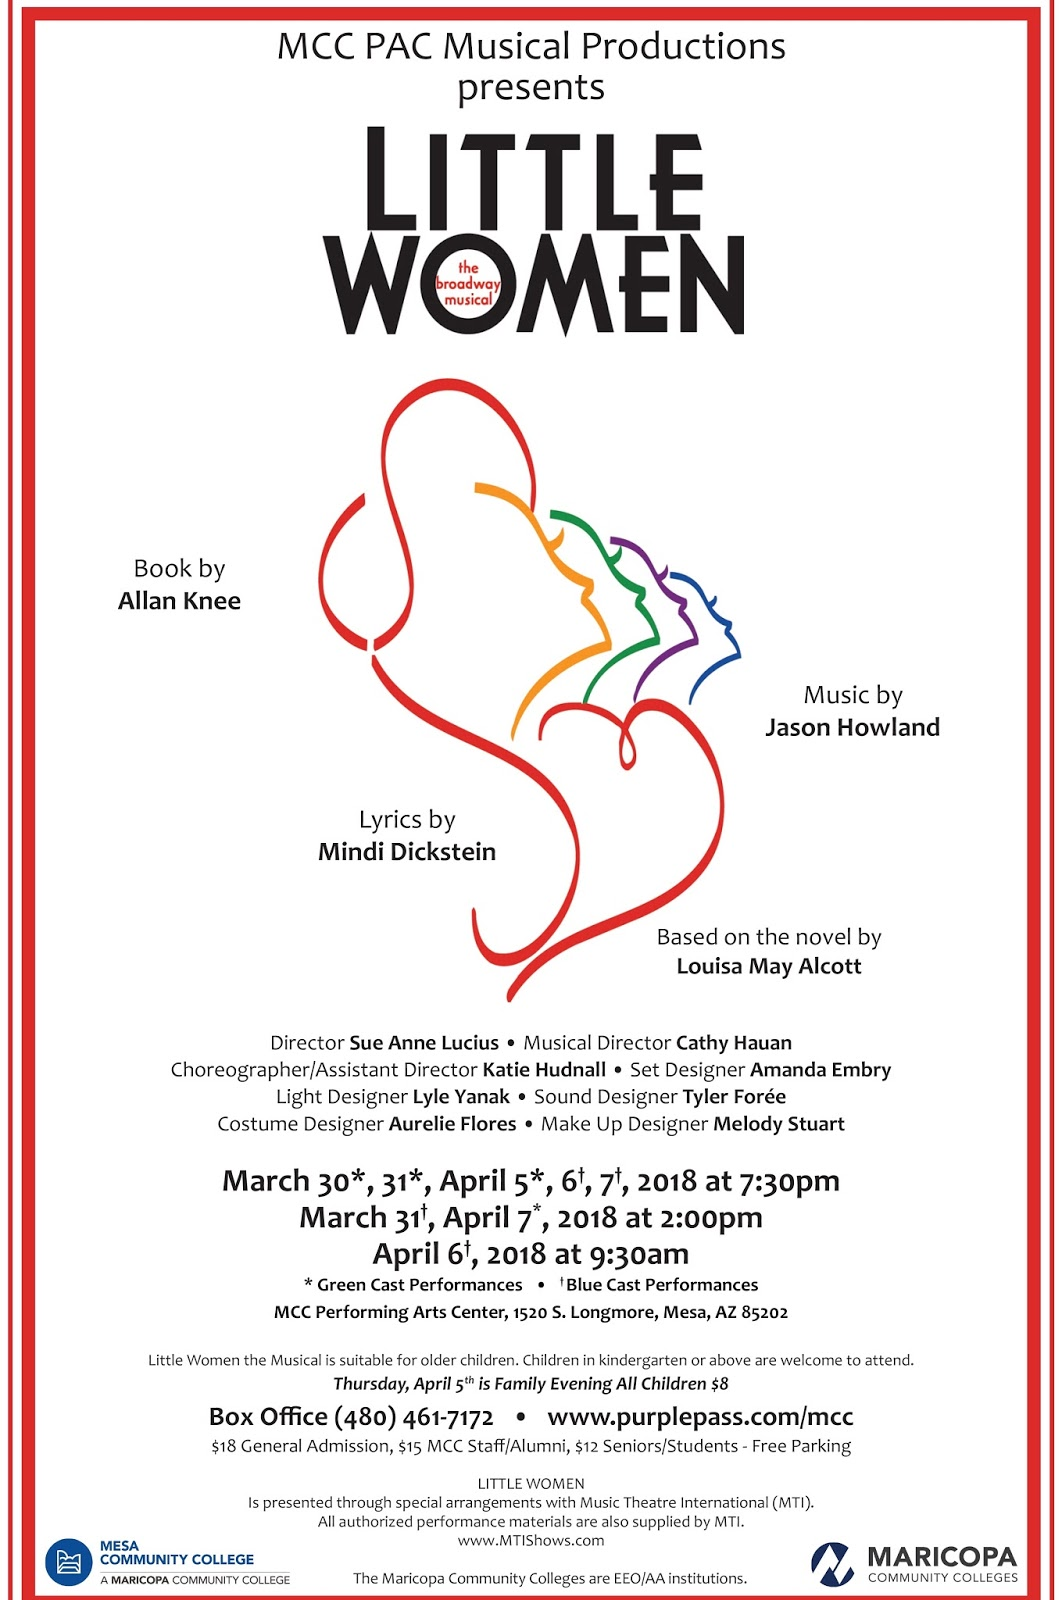 PHX Stages: LITTLE WOMEN - Mesa Community College PAC